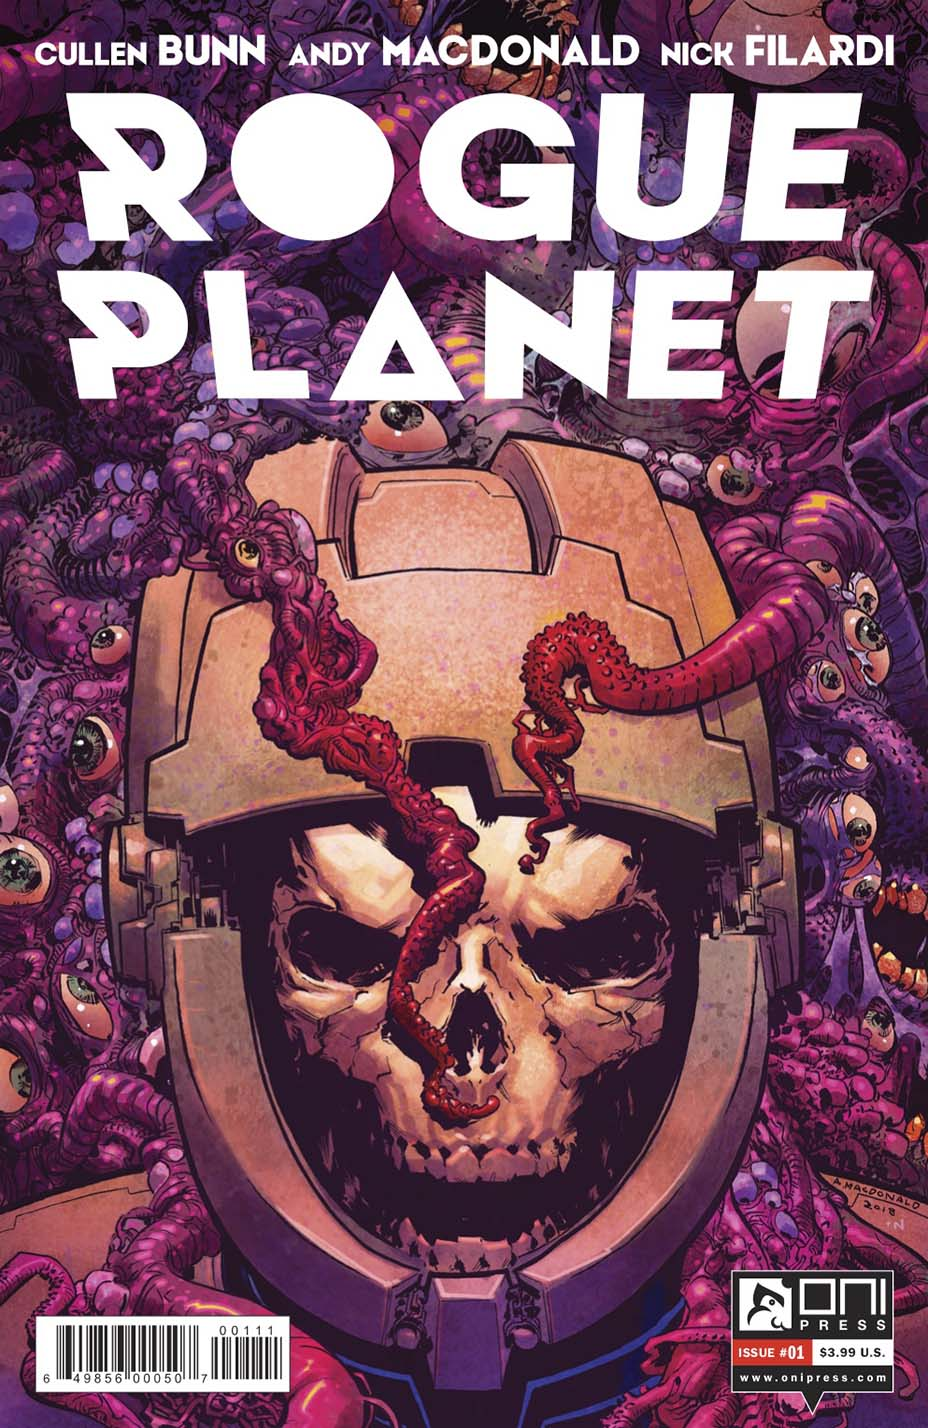 rogue_planet_cover_-publicity-_embed-_2020